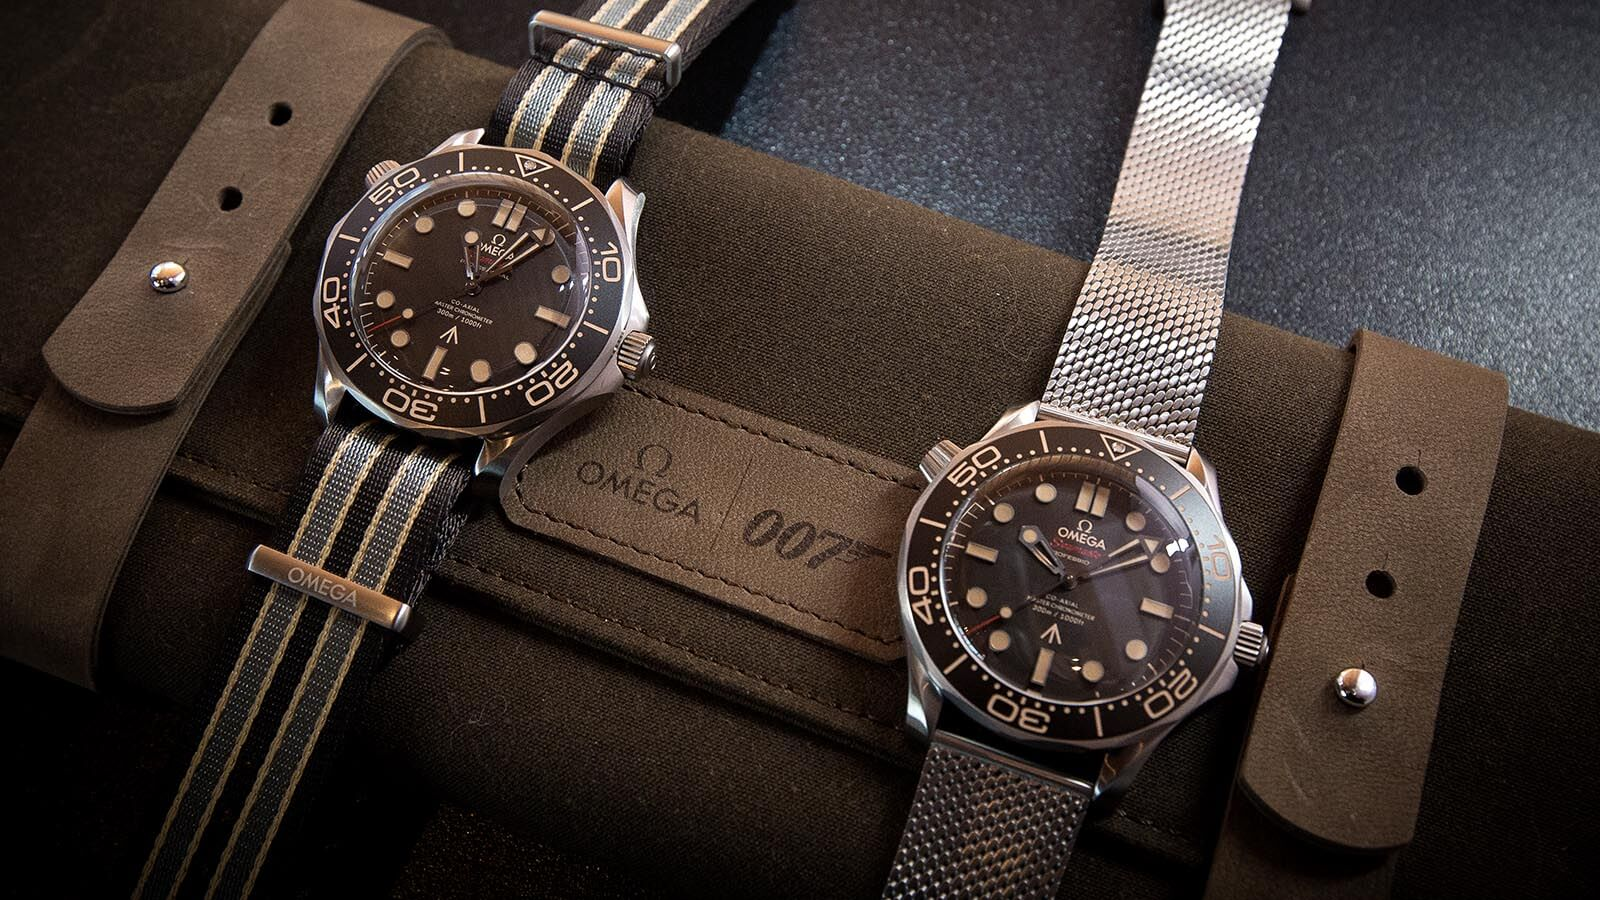 OMEGA Seamaster Diver 300M 007 Edition links am NATO-Band, rechts mit Mesh-Band